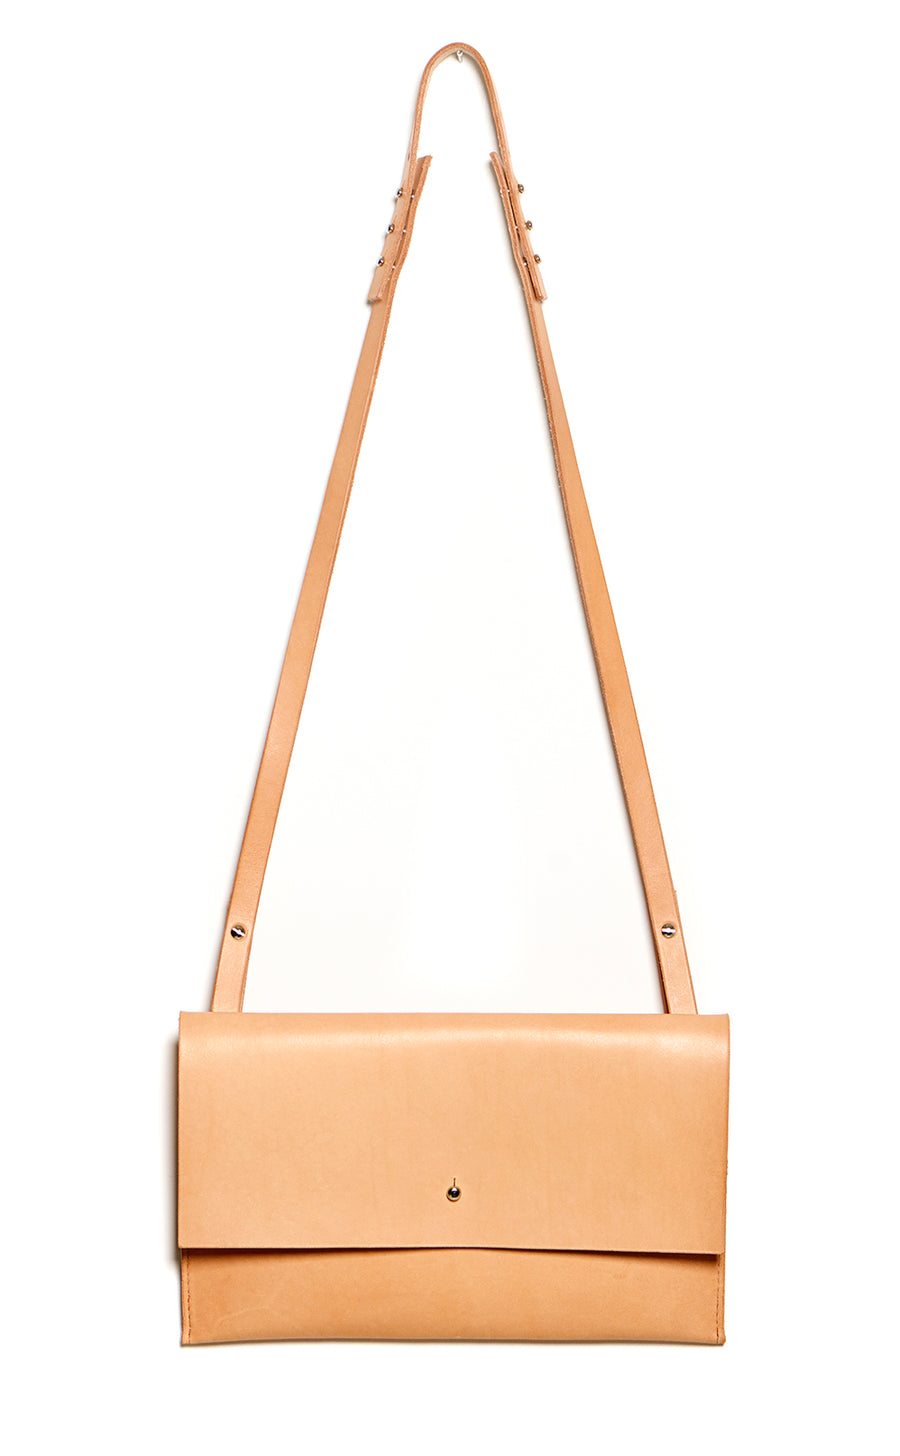 RIGMOR MEGA shoulder bag (natural)